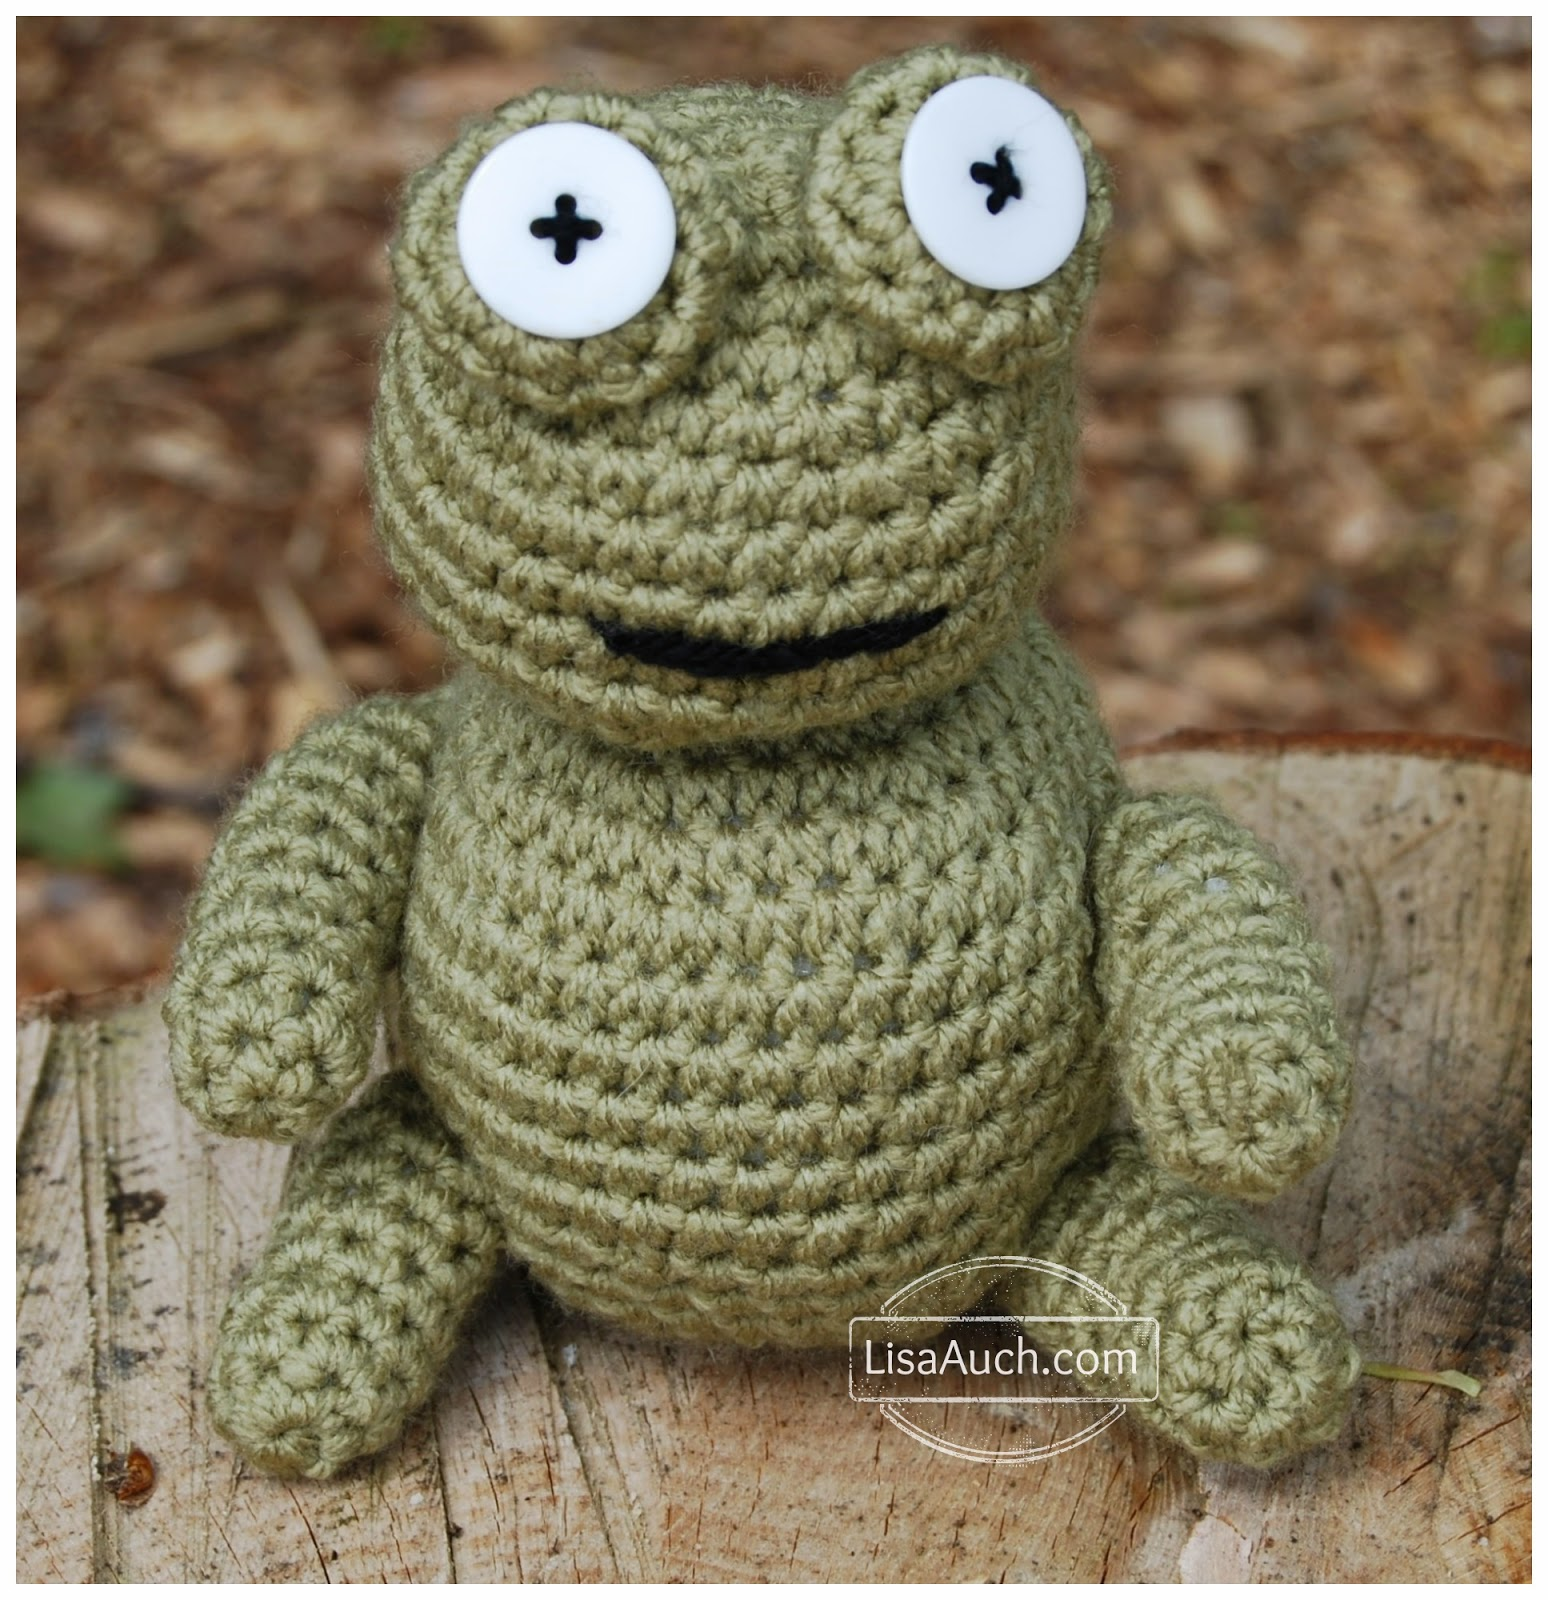 free amigurumi crochet toys patterns-amigurumi-crochet-toys-dolls-animals